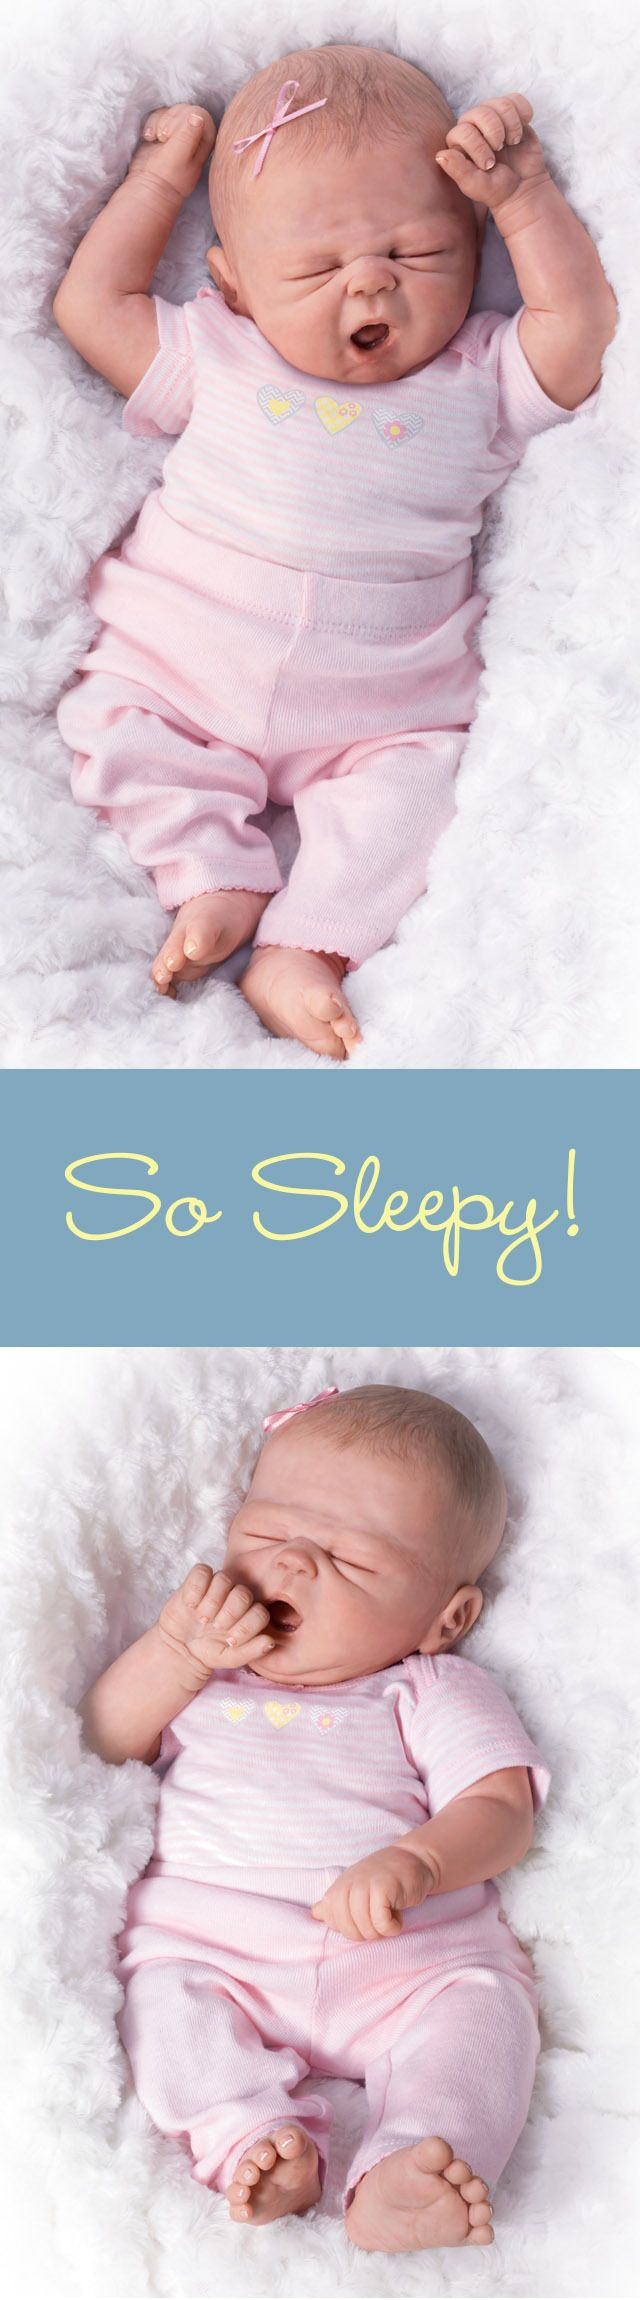 Cuddle this lifelike So Truly Real baby doll close - So Sleepy Sophie is ready for bed!